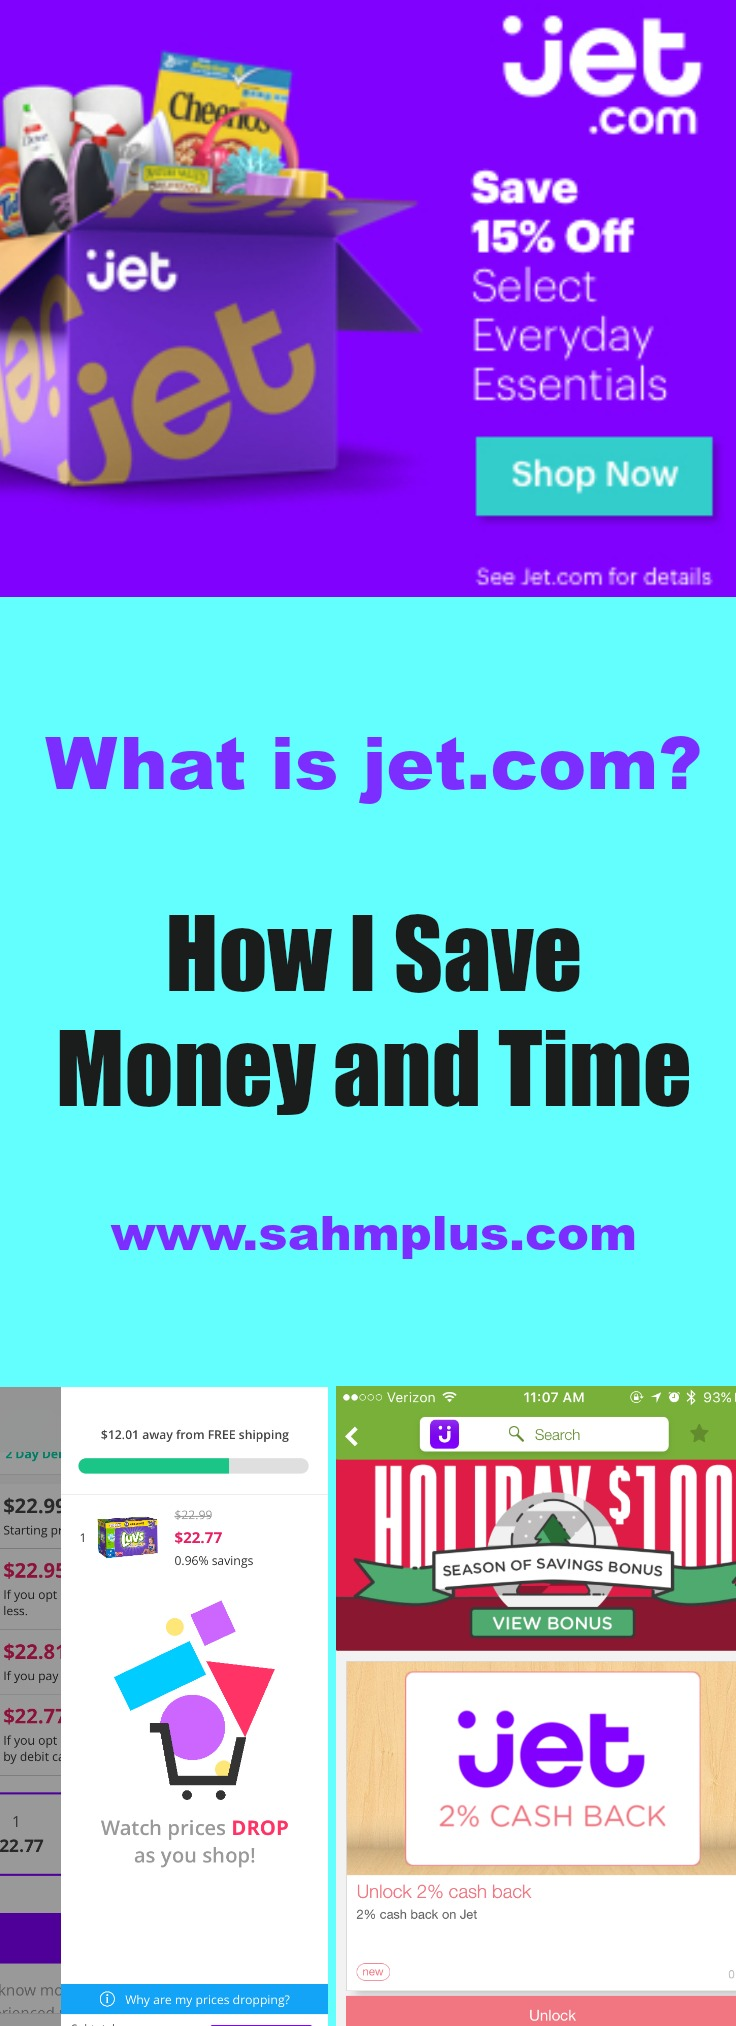 what is jet.com? save time, save money, coupon code and cash back